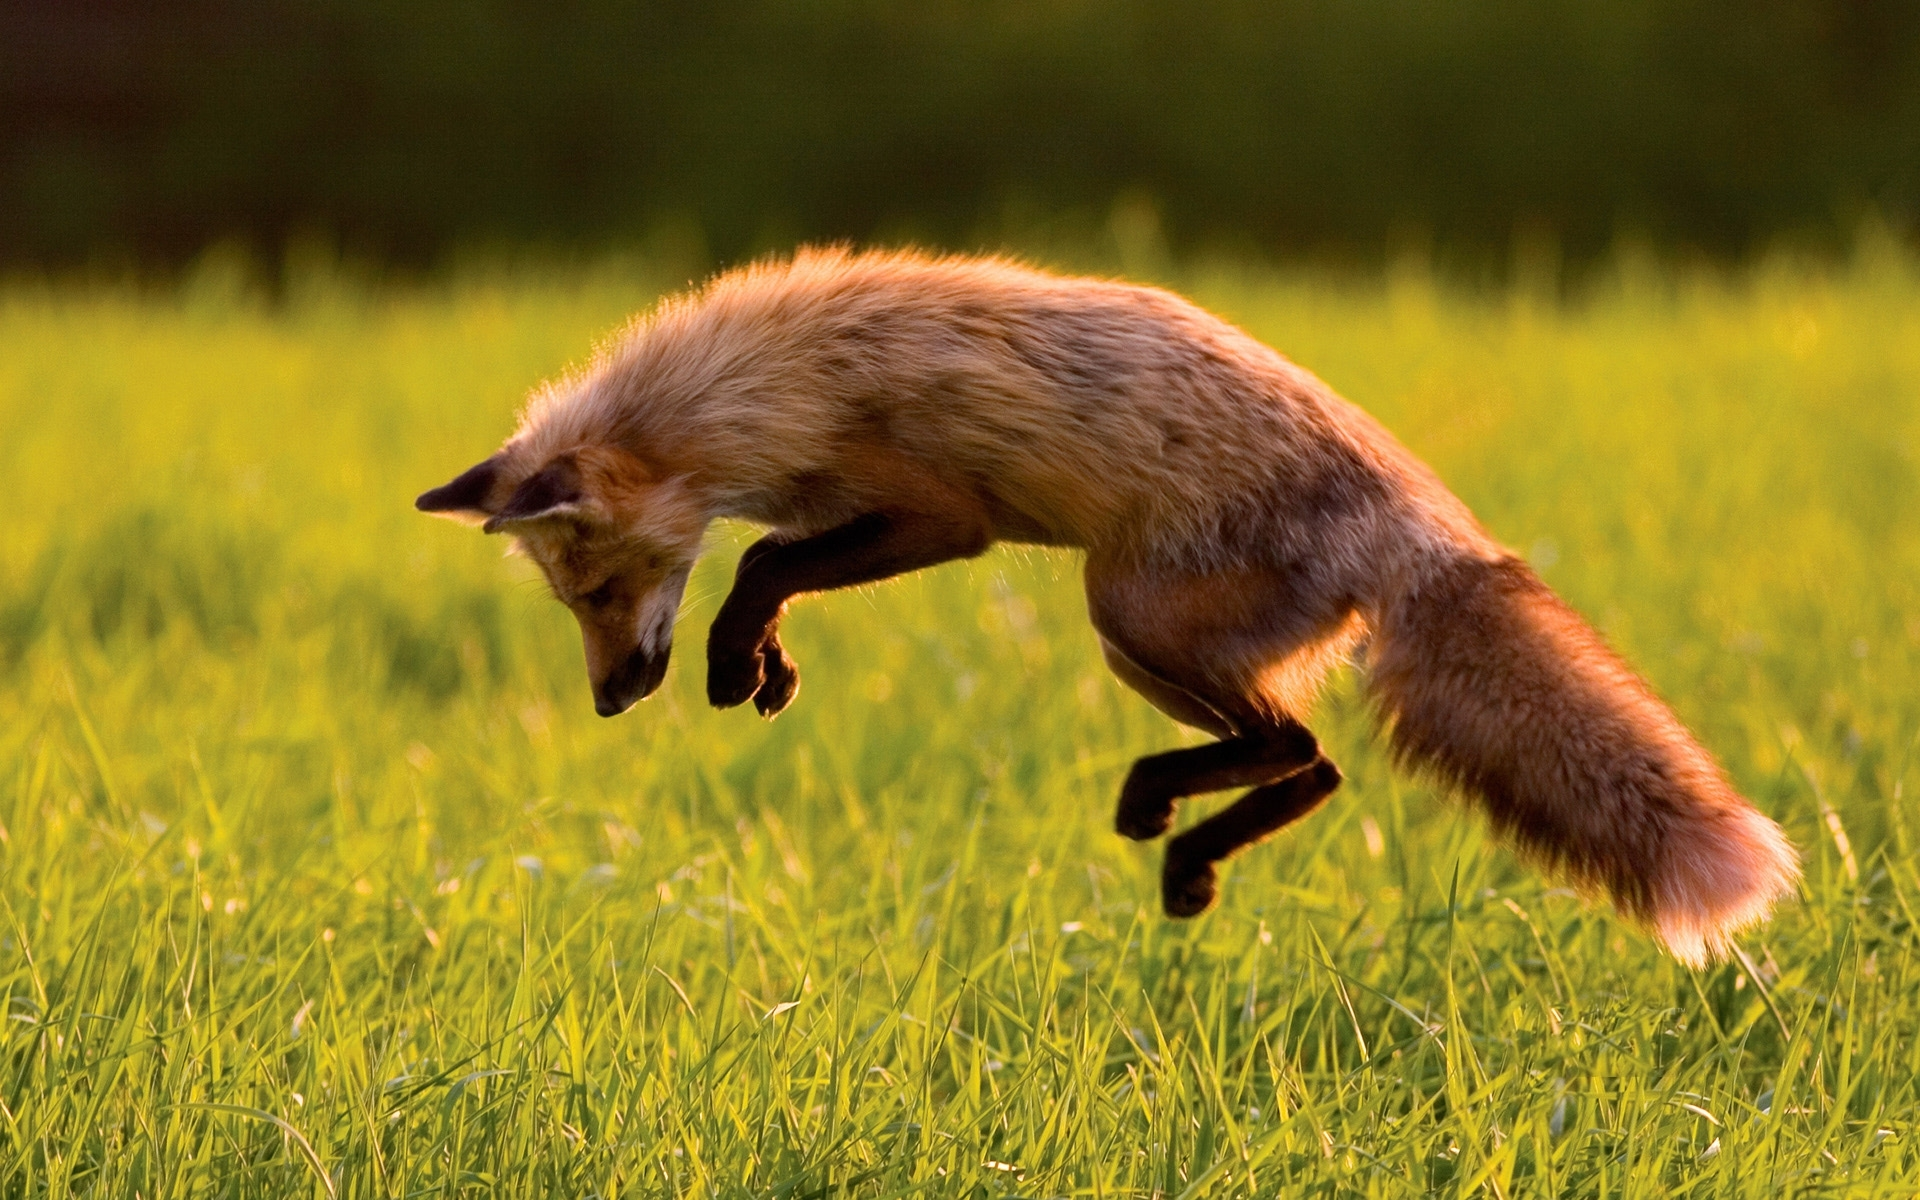 48131 download wallpaper Animals, Fox screensavers and pictures for free